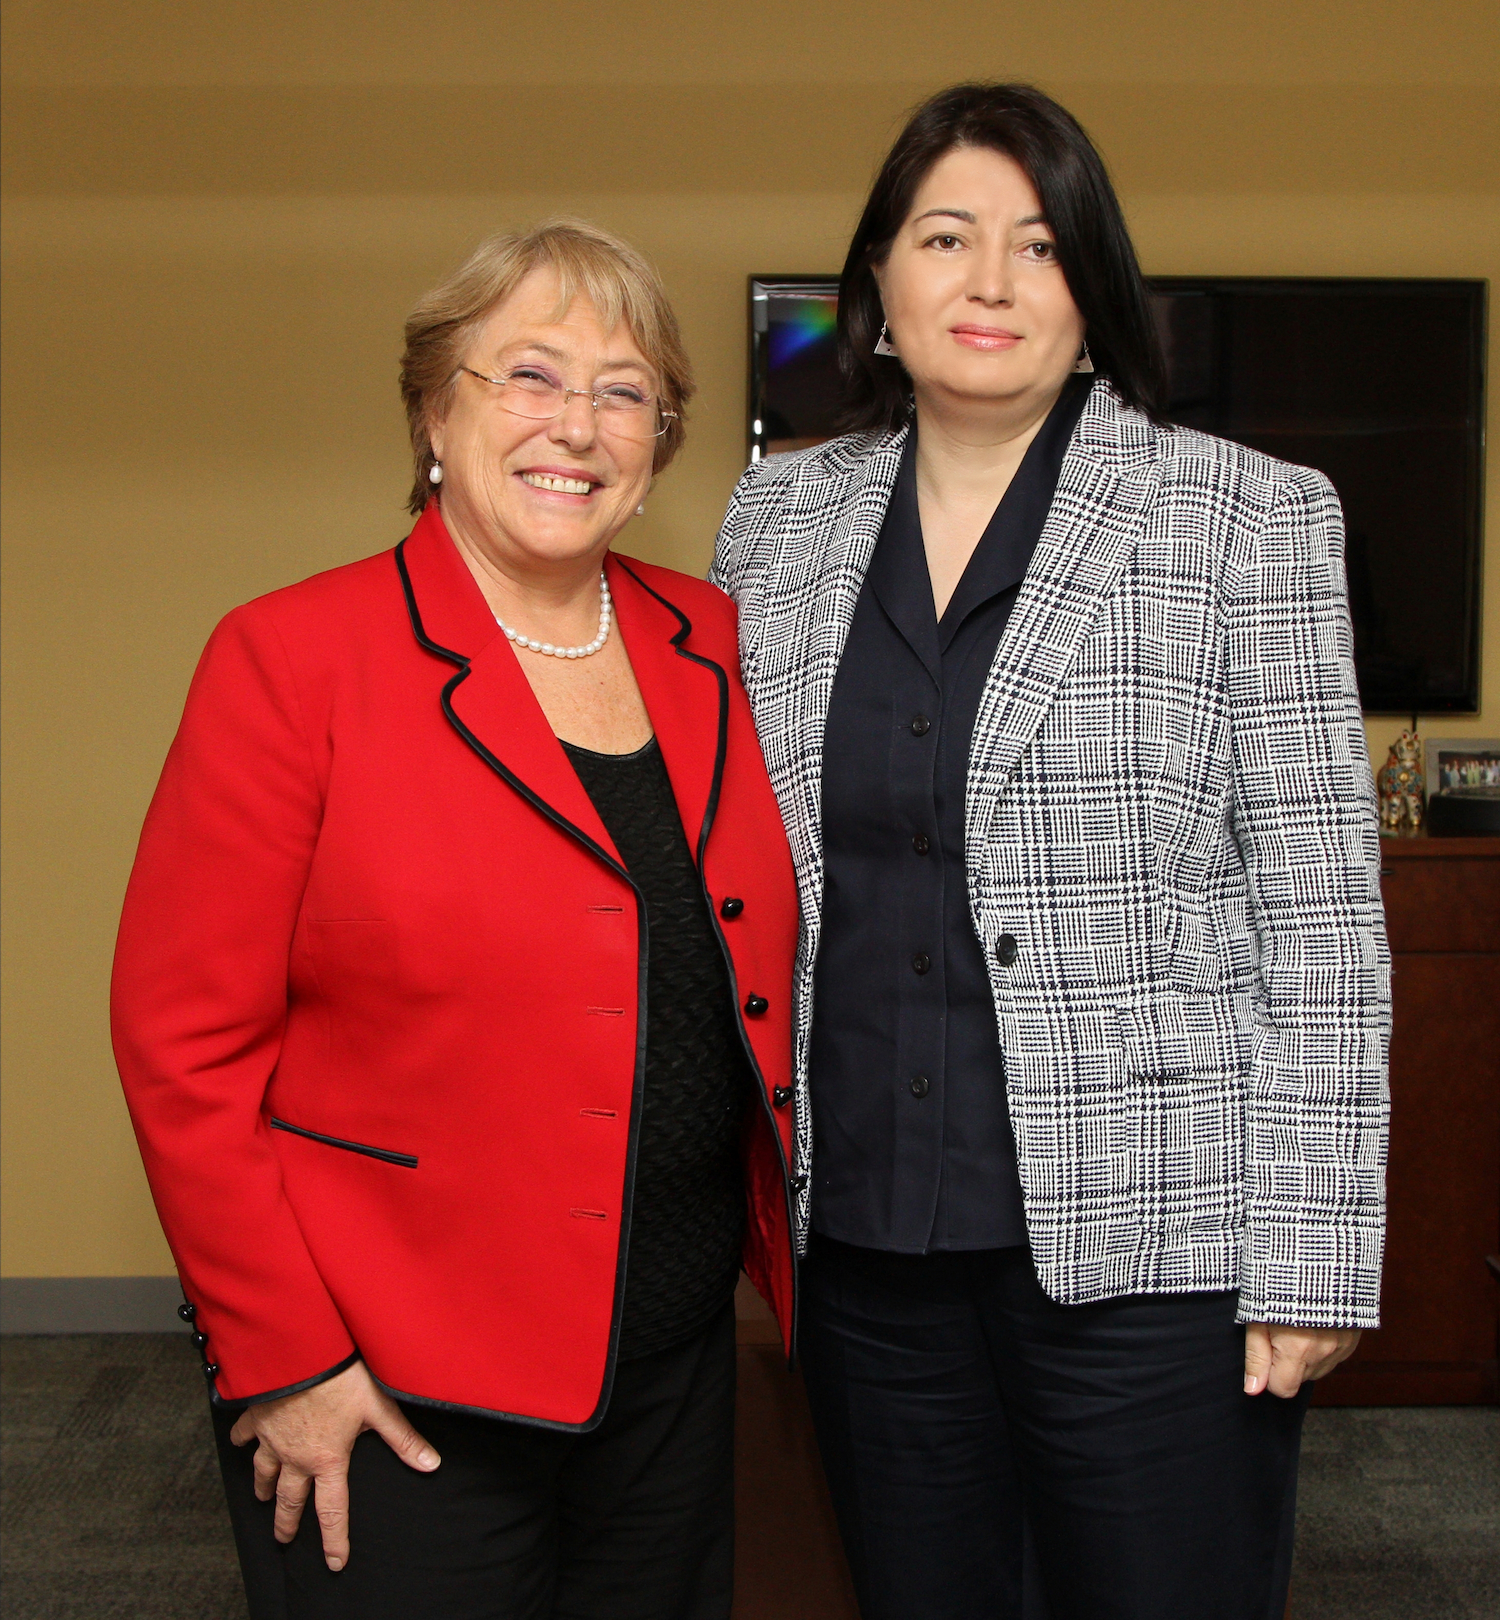 Executive Director UN Women, Dr. Michelle Bachelet and FIDE Vice President, Beatriz Marinello